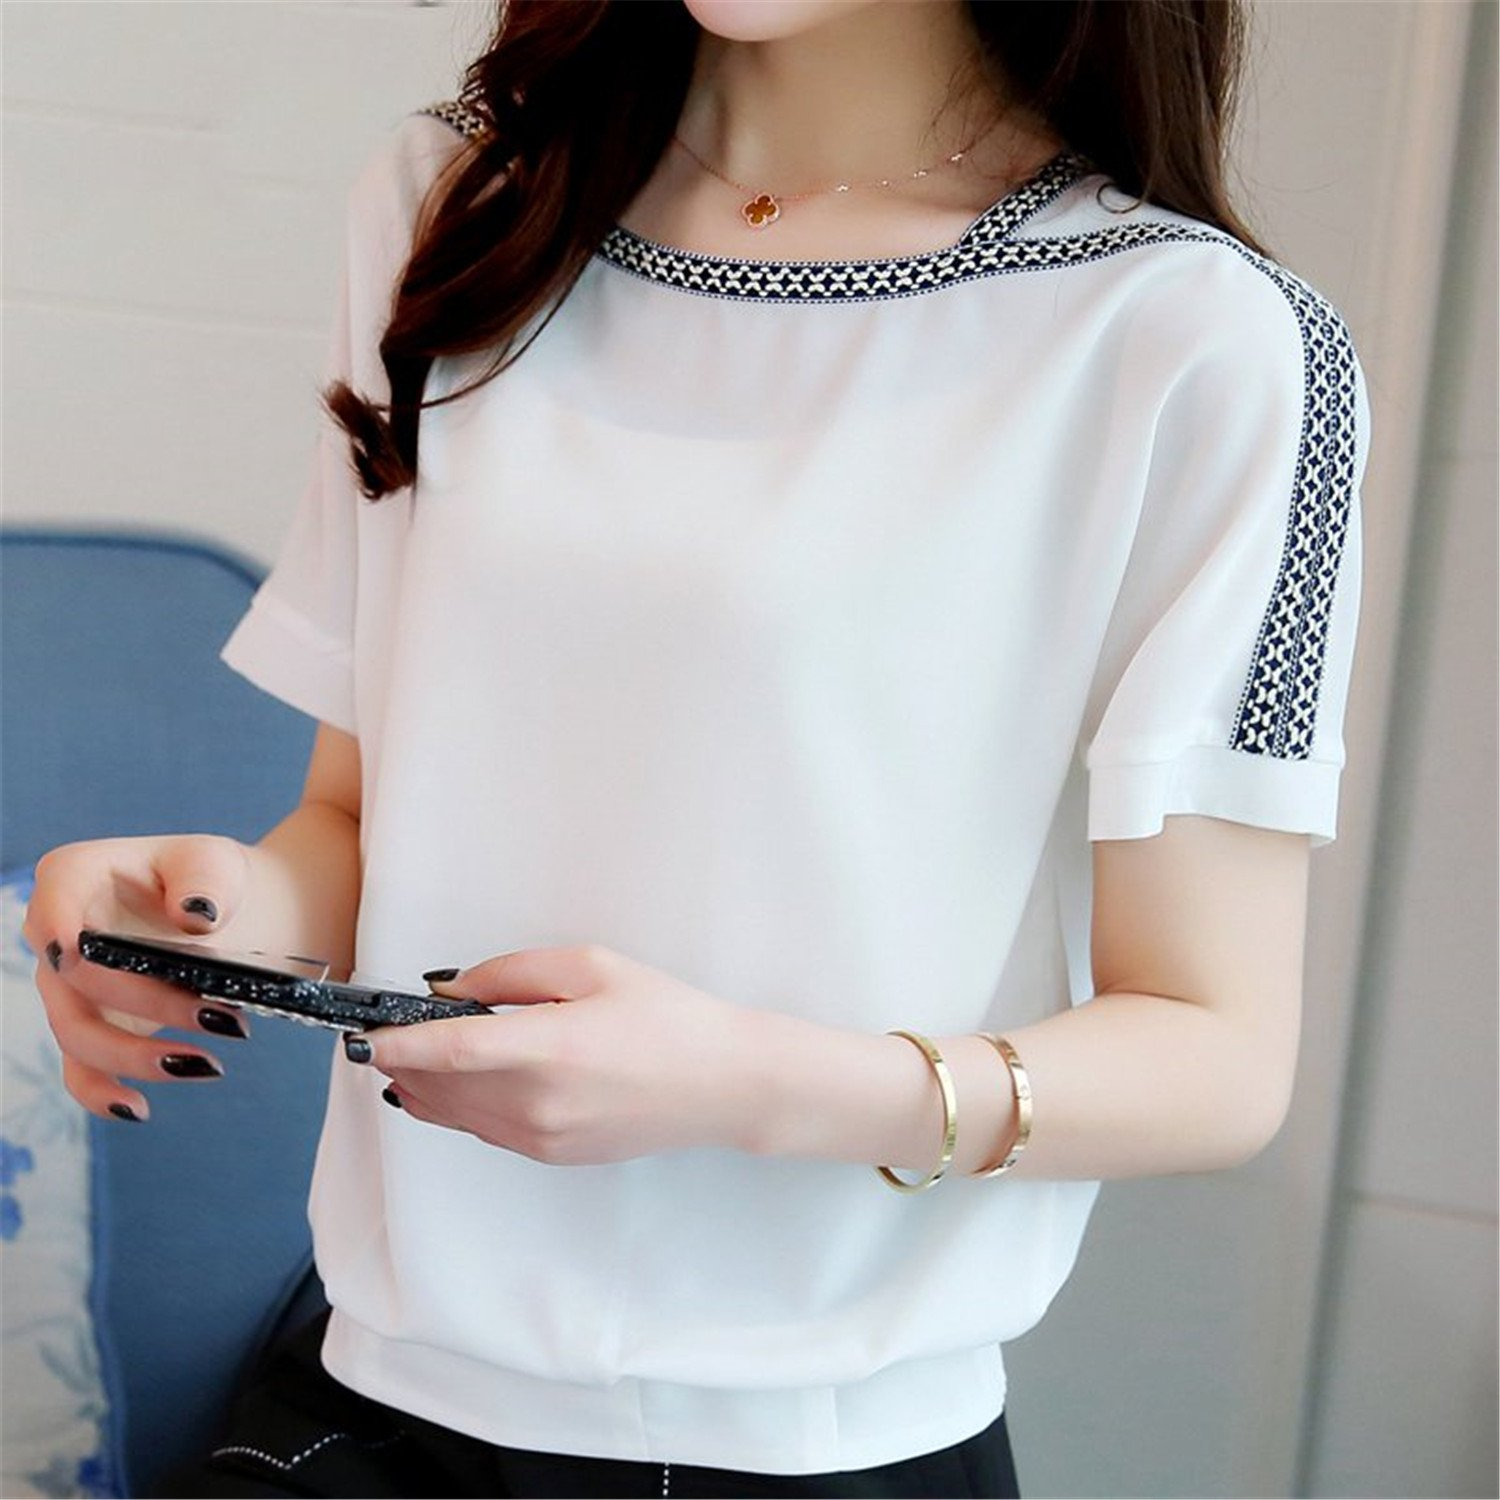 OUXIANGJU Women New Summer Chiffon Shirts Batwing Sleeve Tops Casual Embroidery Plus Size Blouses at Amazon Womens Clothing store: